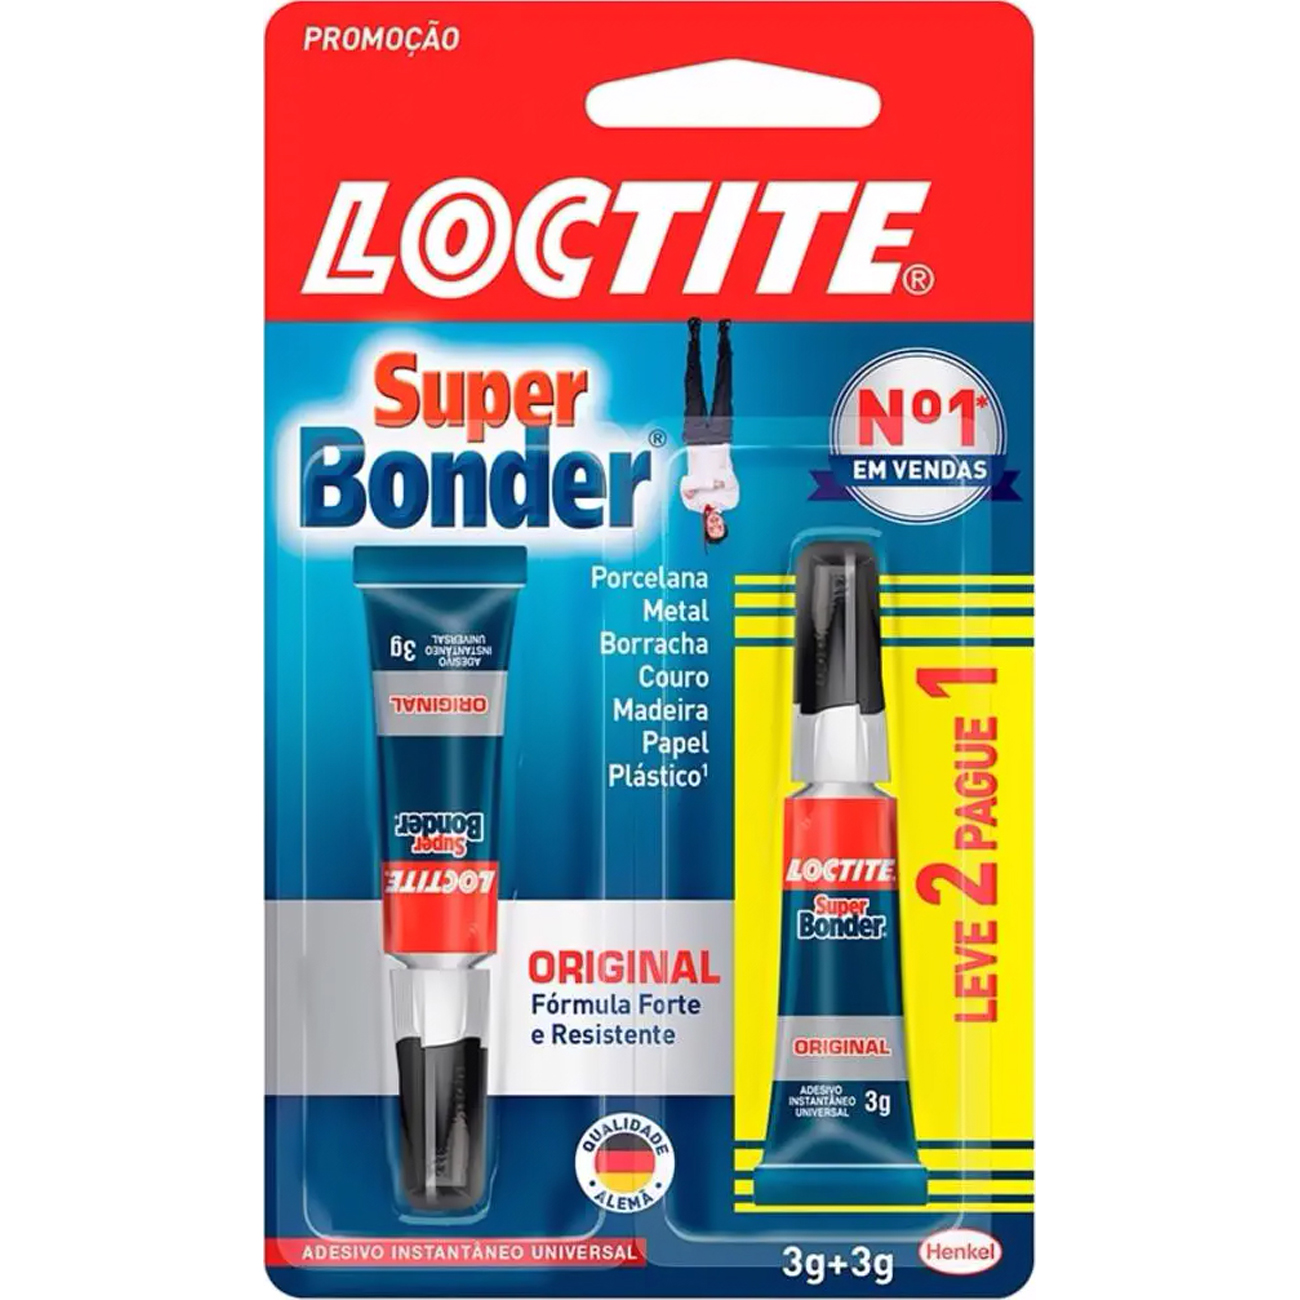 Loctite Super Bonder 3g Leve 2 Pague 1